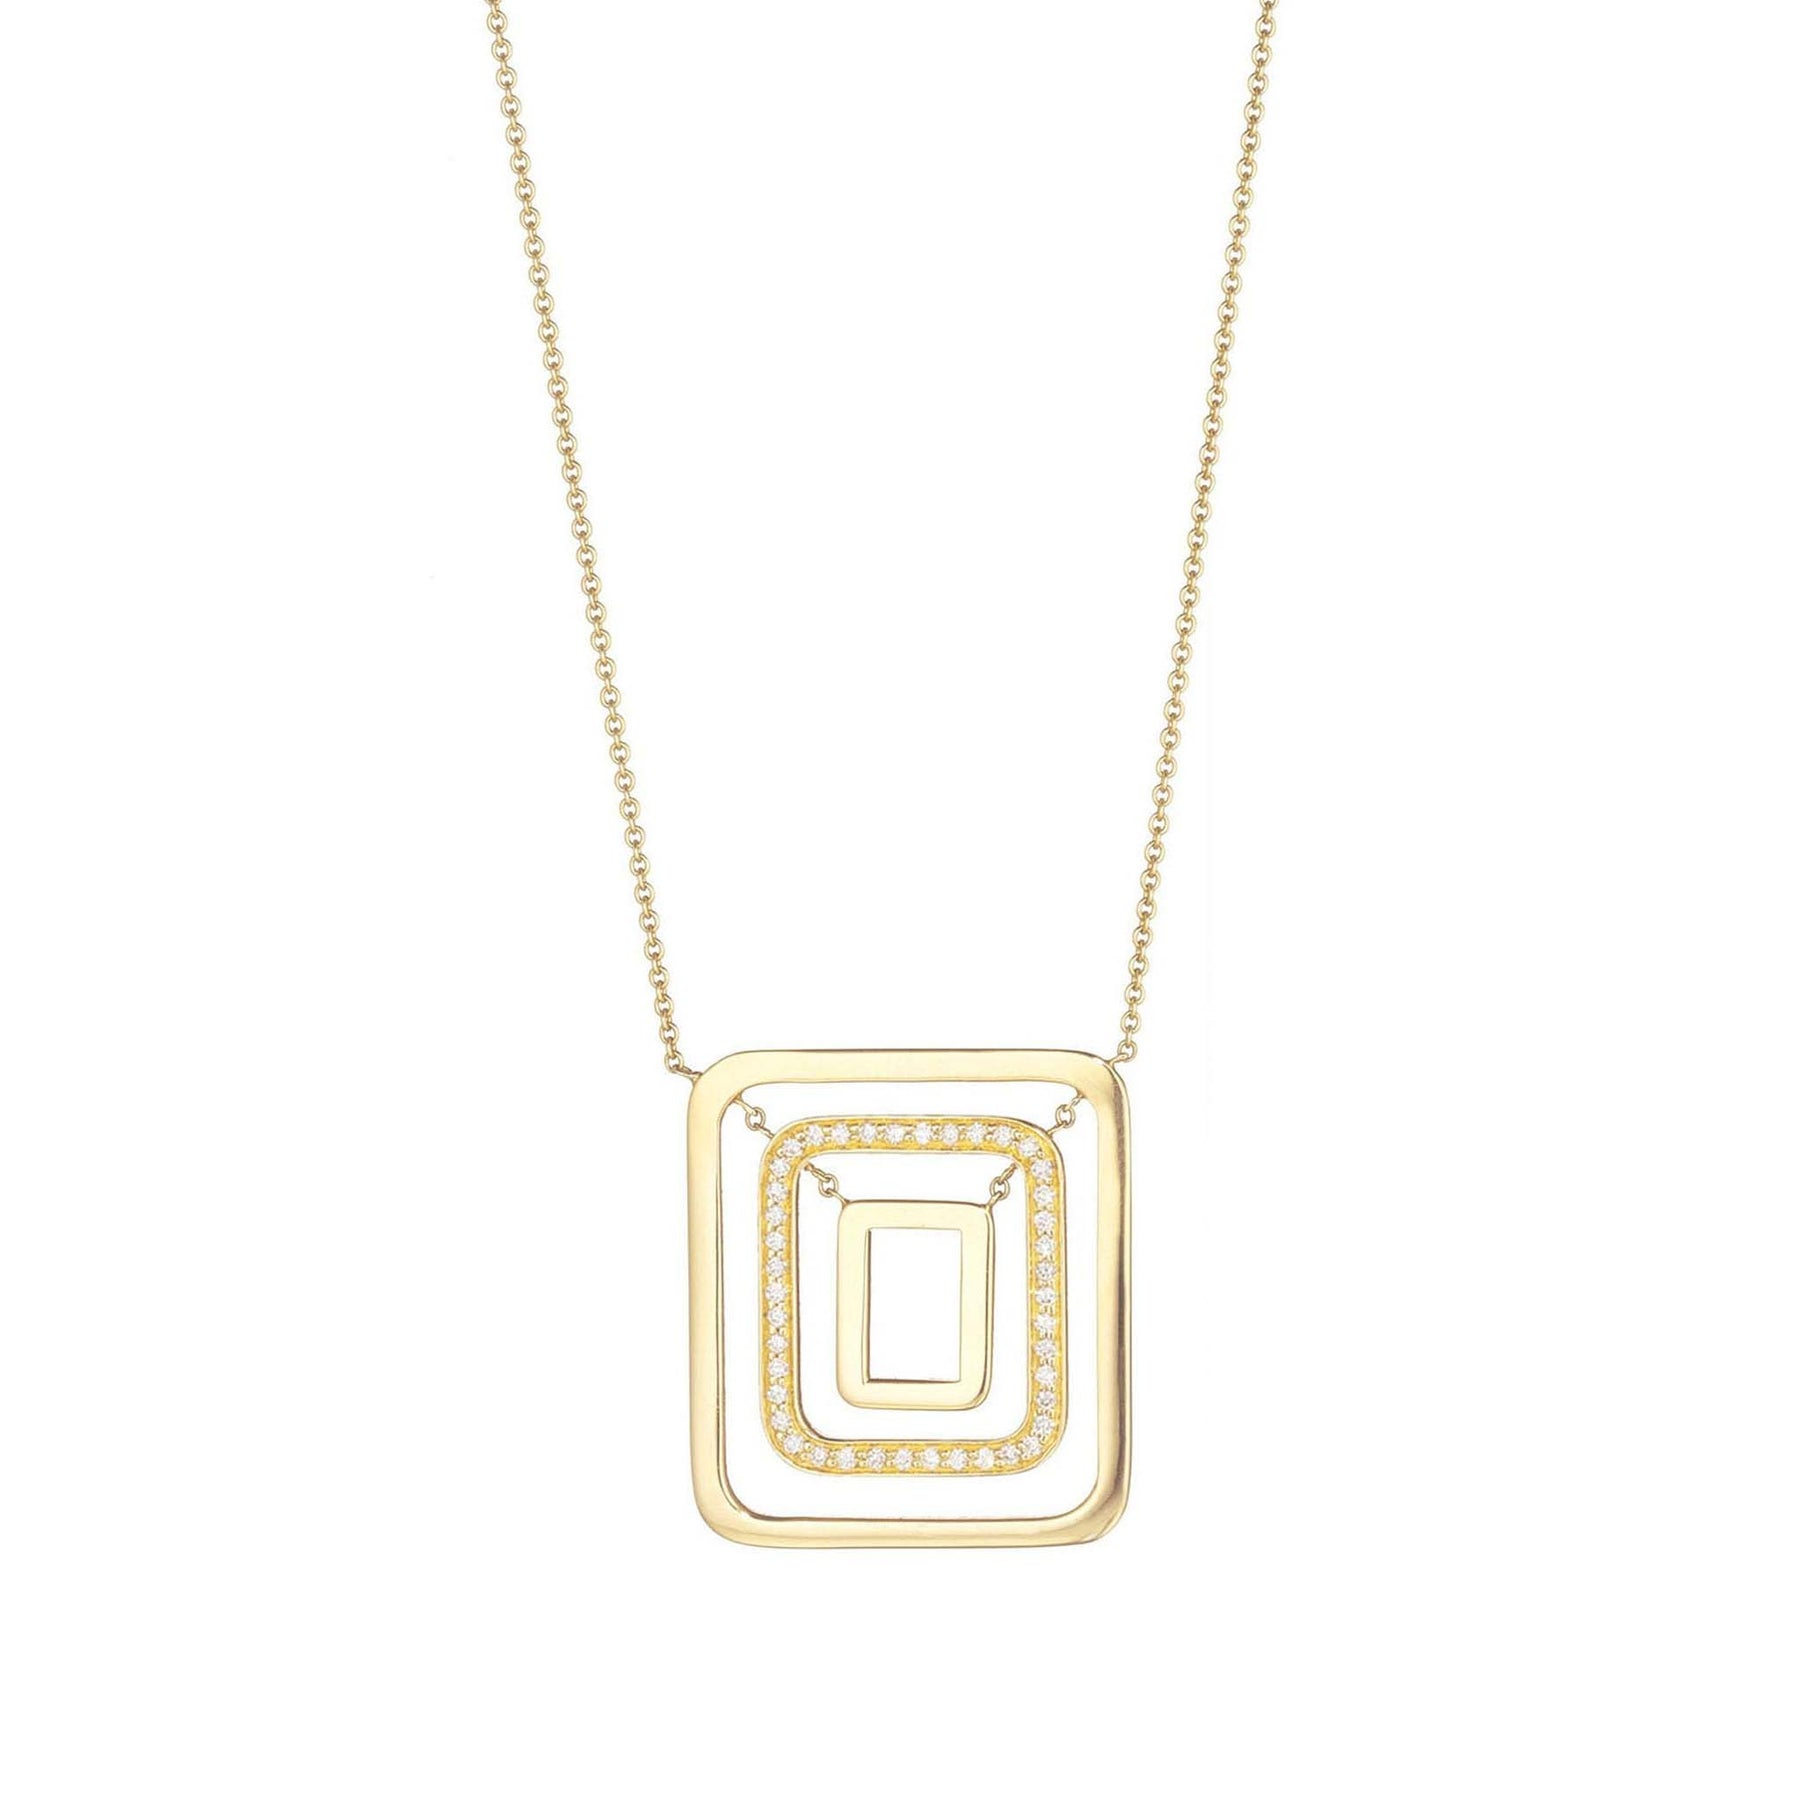 Mimi-So-Piece-Square-Swing-Diamond-Necklace_18k Yellow Gold